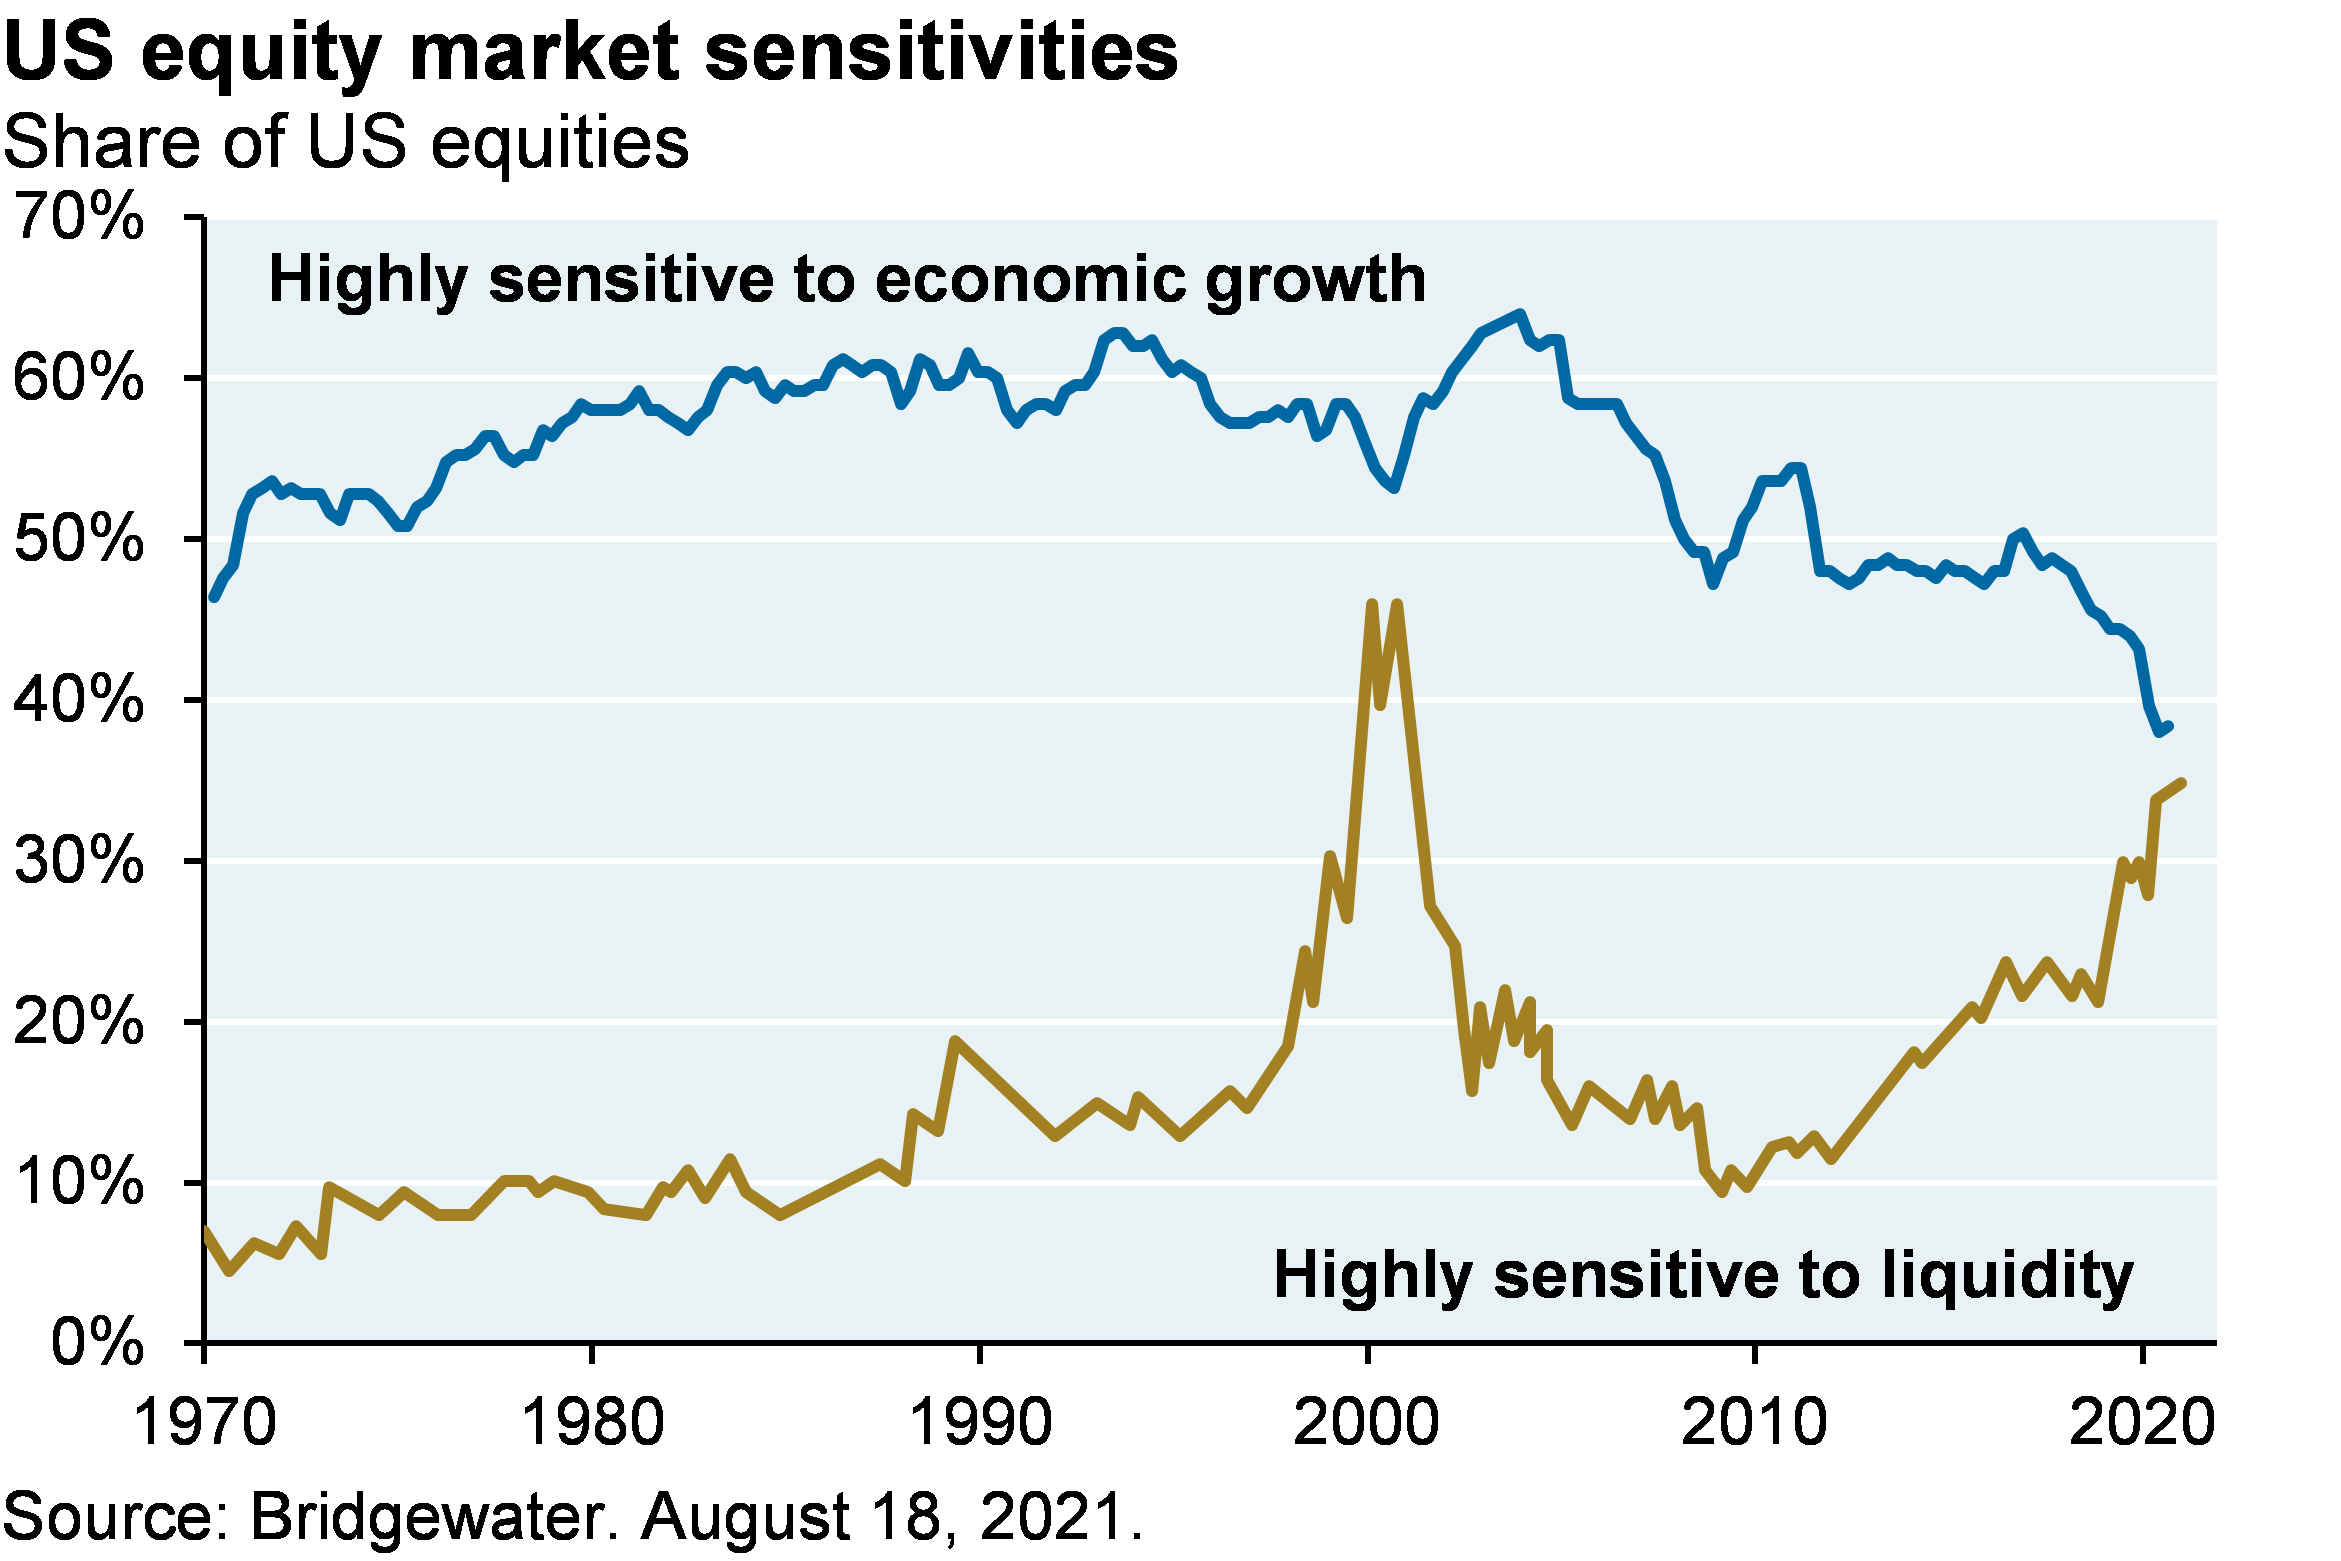 Line chart shows US equity market sensitivities since 1970, shown as the share of US equities. Line chart shows that over 50% of US equities were highly sensitive to economic growth from 1970, but the share began declining in the early 2000s to its most recent level of just under 40%. The chart also shows the share of US equities highly sensitive to liquidity, which steadily increased from around 5% in 1970 to 15% in the late 1990s, then spiked to 45% in 2000 but declined to 20% by the early 2000s. Since 2010, the share of US equities highly sensitive to liquidity has risen steadily from its 2010 level of 10% to its most recent level of around 35%.